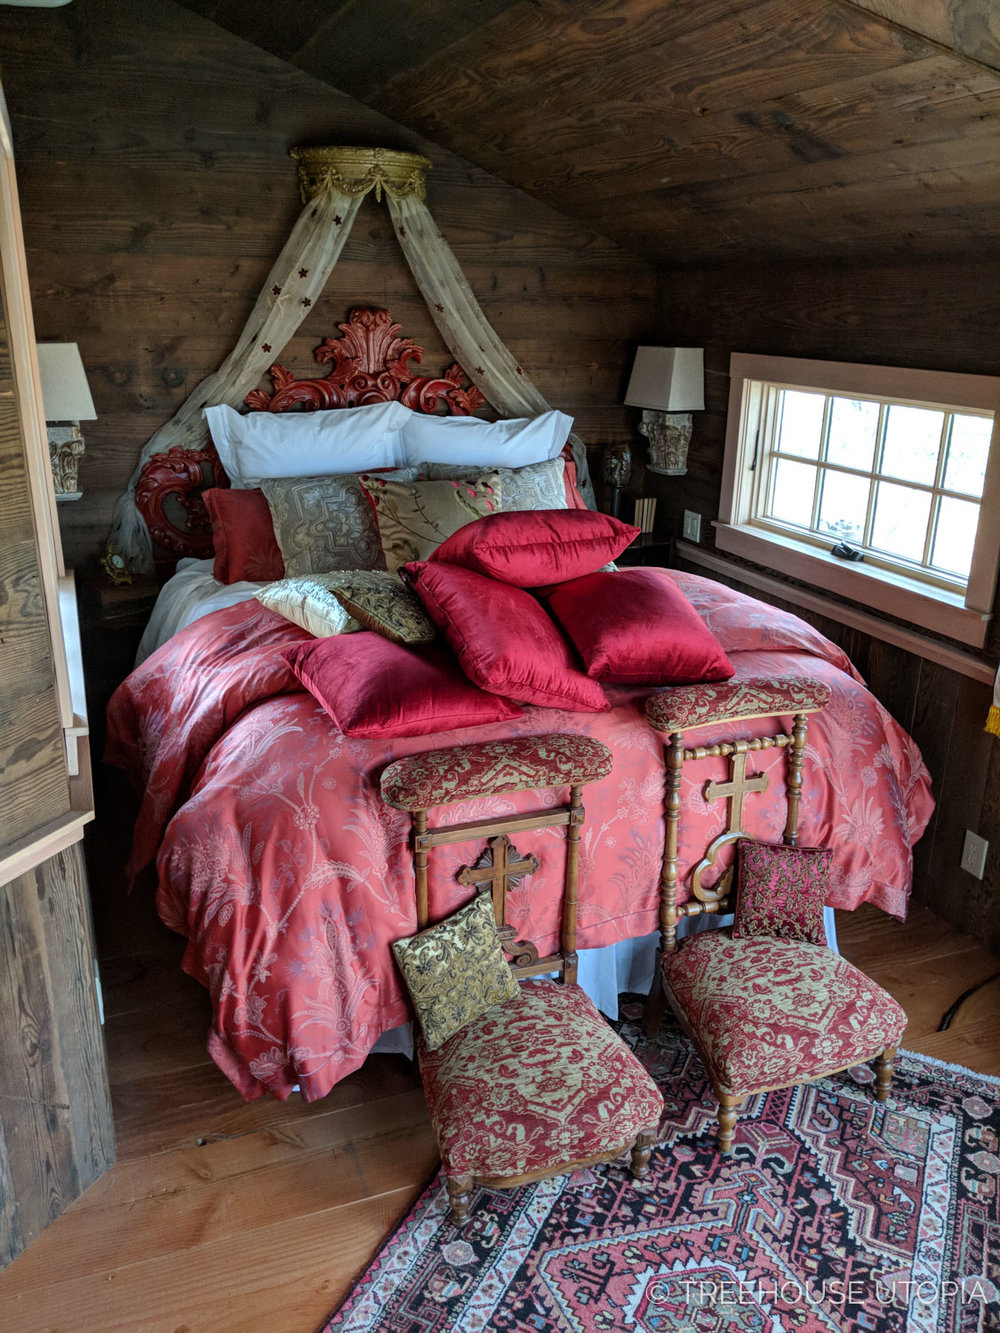 chapelle-bedroom-nelson-treehouse-utopia.jpg